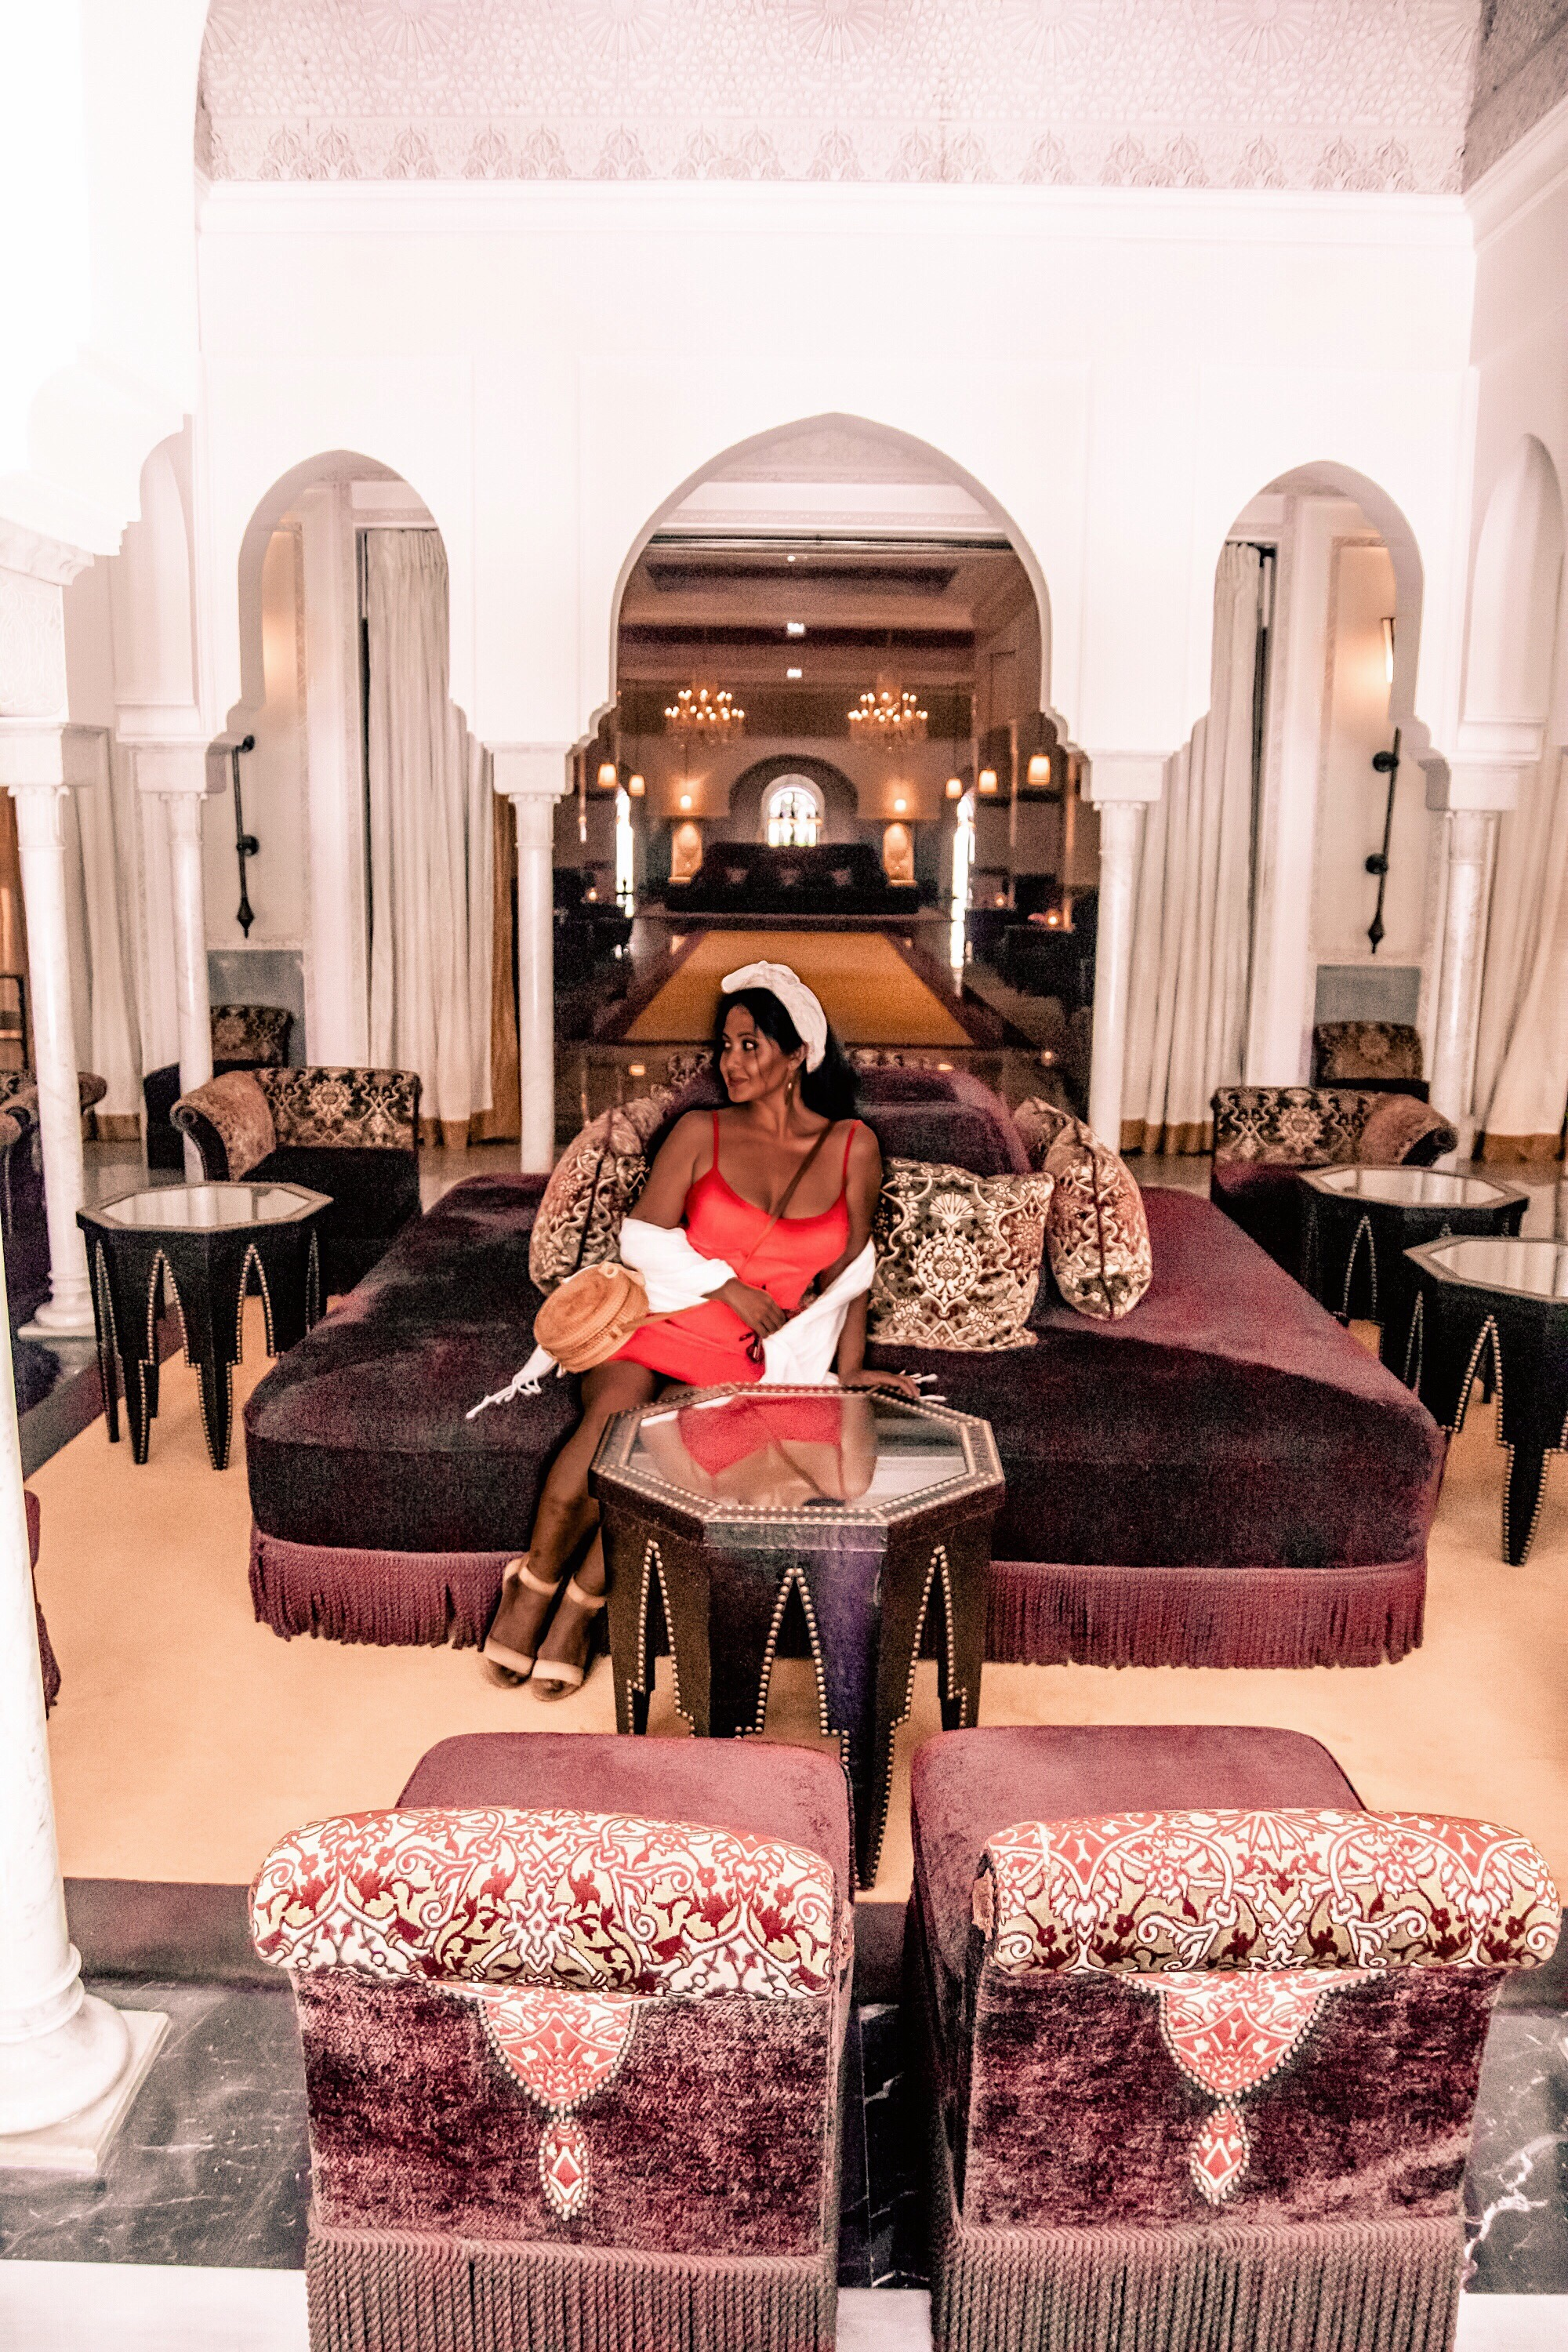 Marjolyn Lago Marj What Color Shoes To Wear With A Red Dress How To Wear A Summer Red Dress What To Wear In Morocco Marrakech Paris Chic Style 3